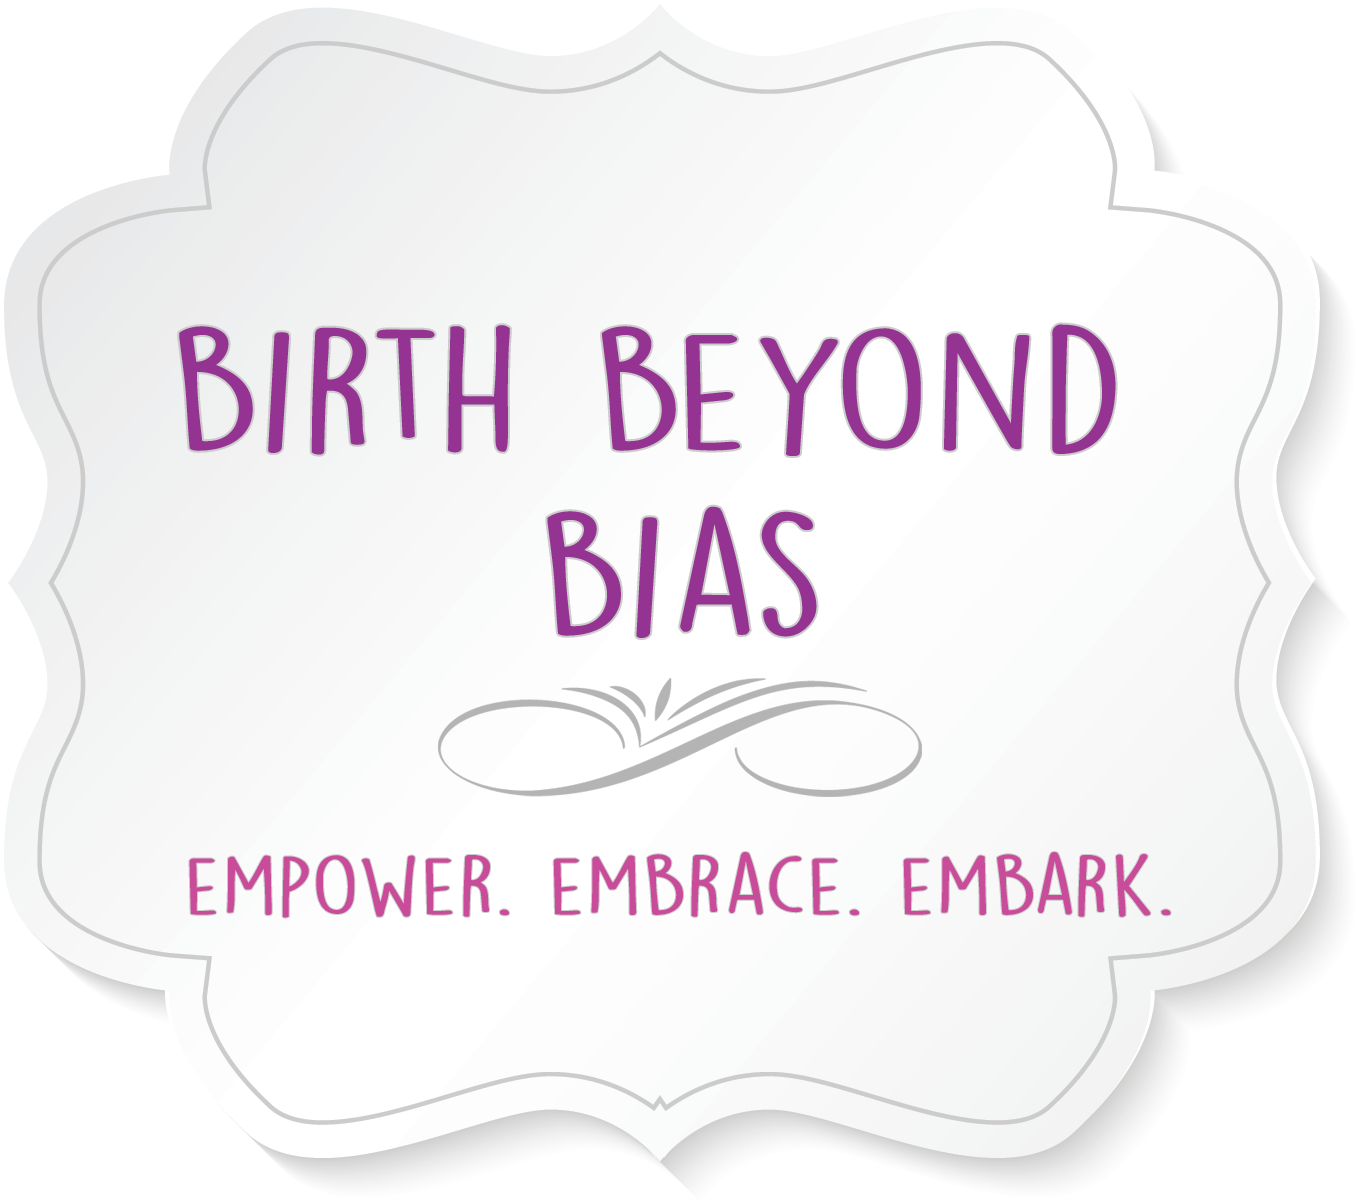 Birth Beyond Bias